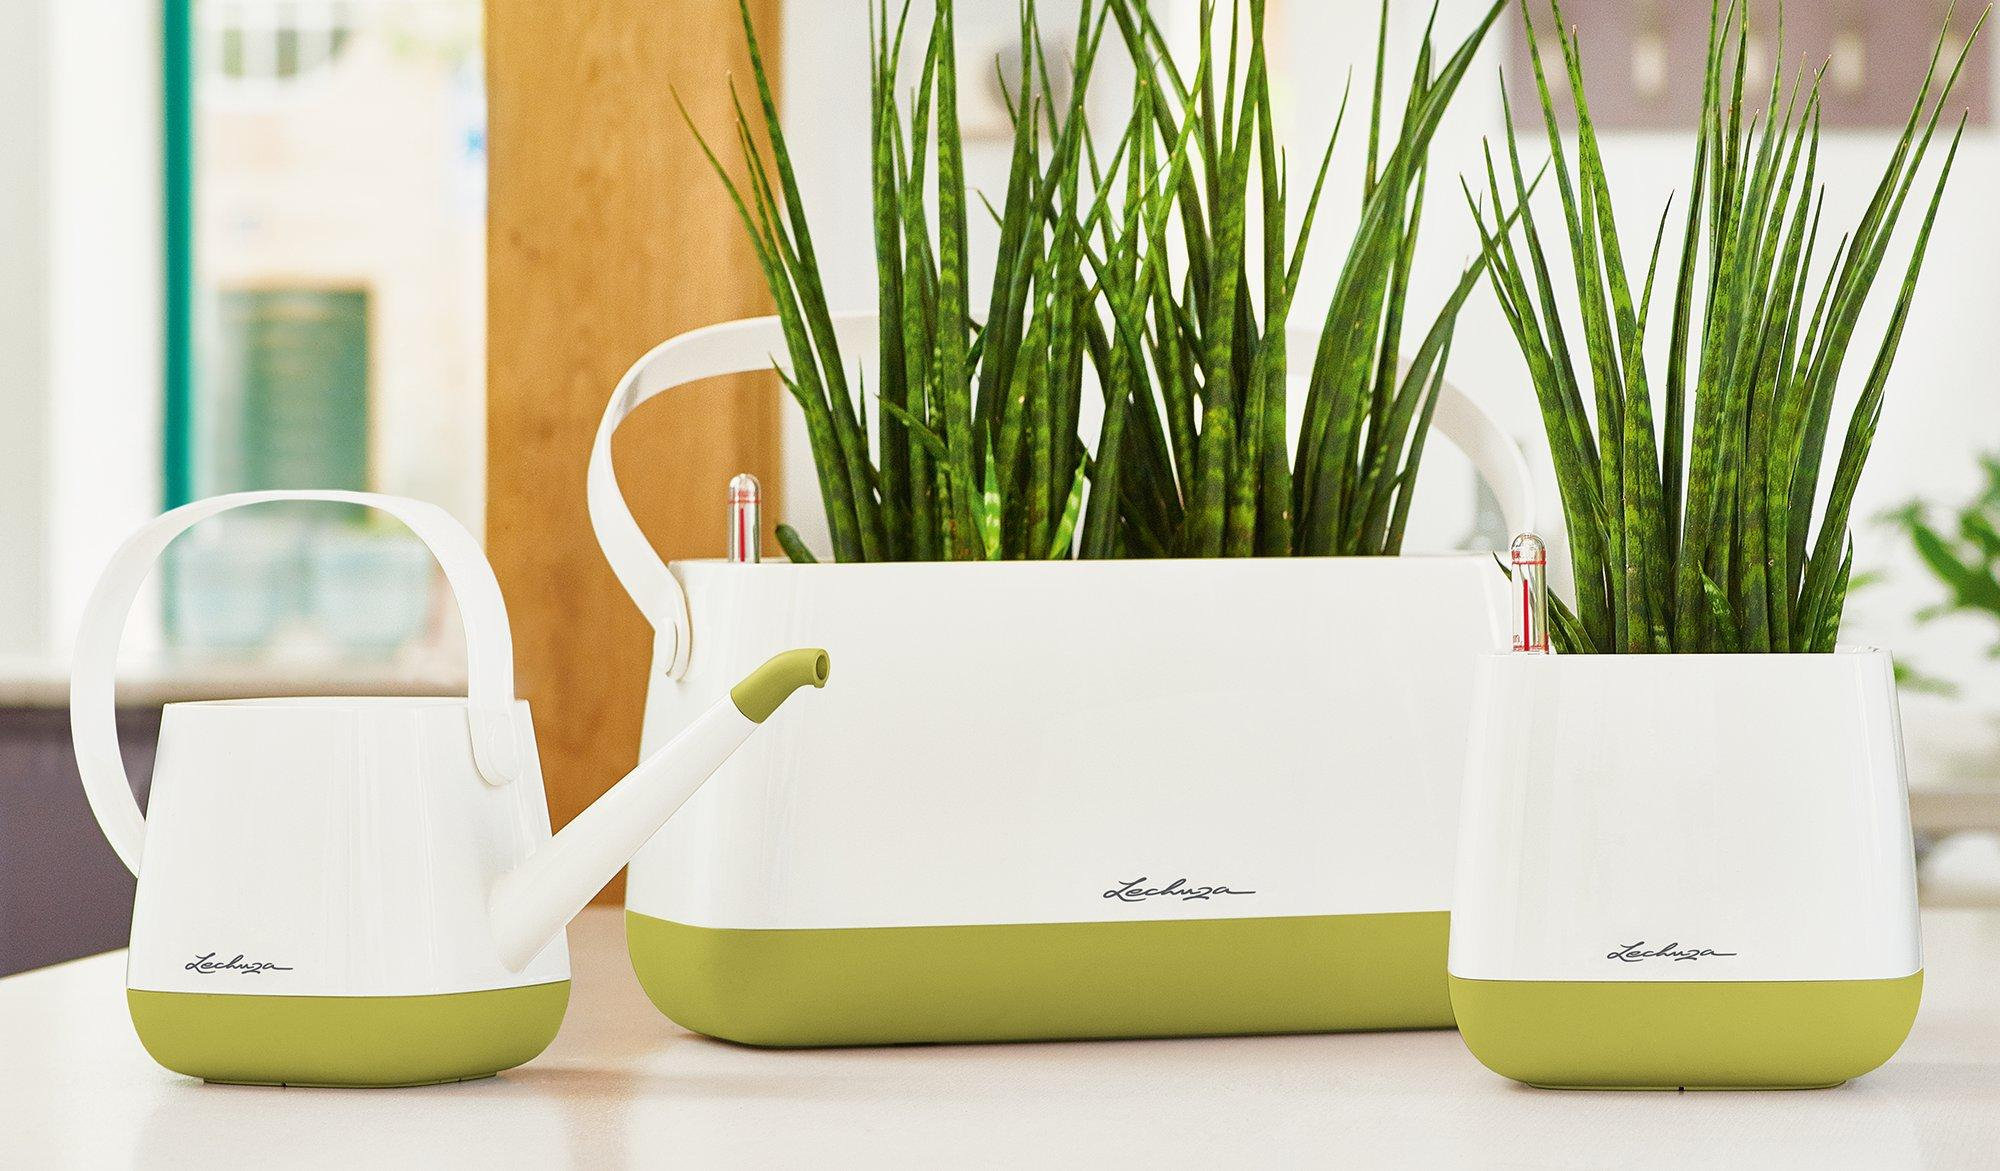 le_yula-pflanztasche_product_content_set